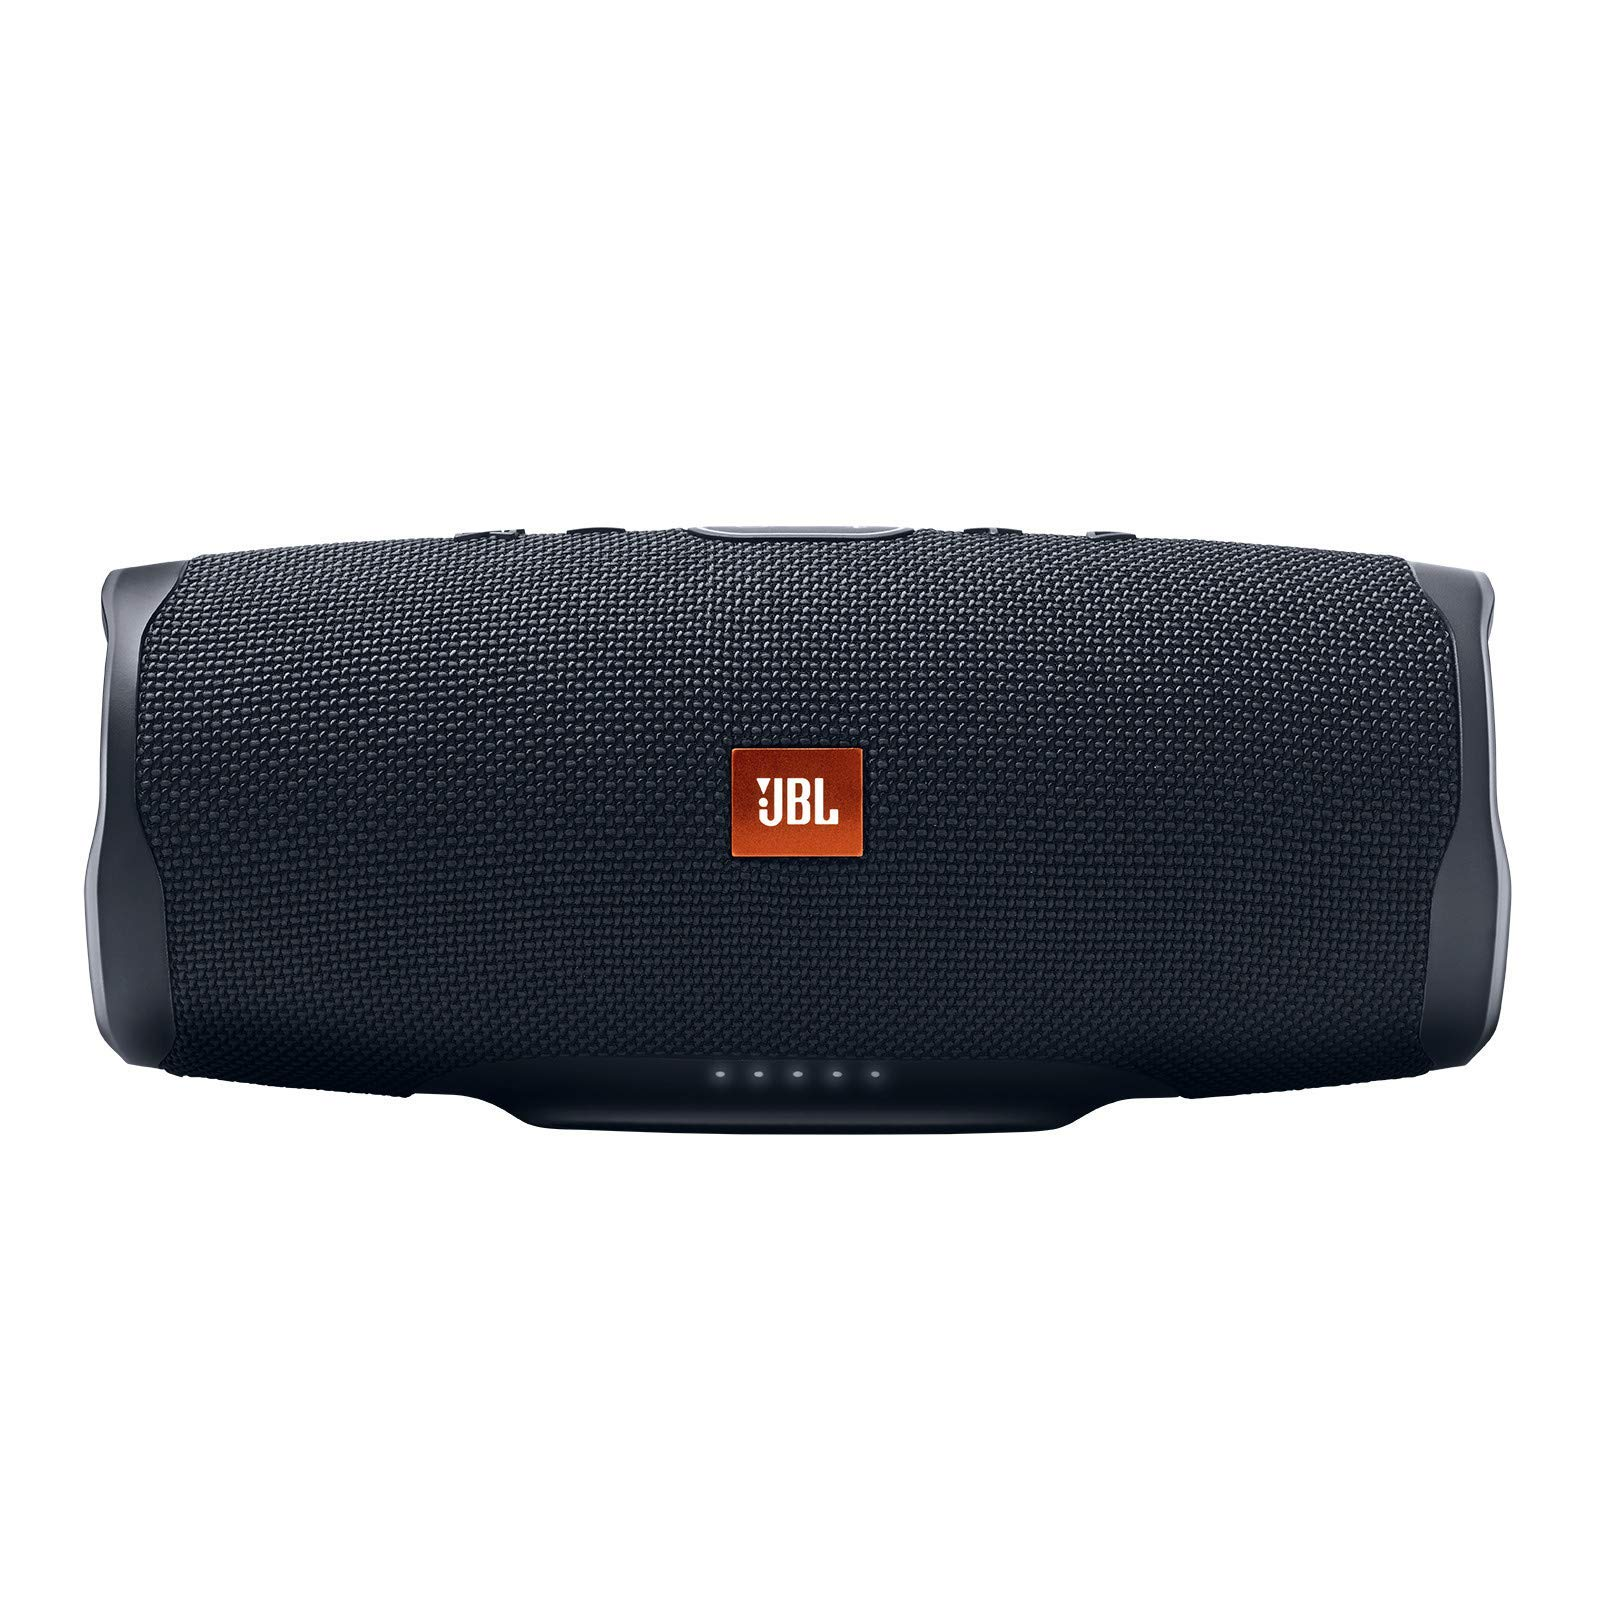 JBL Charge 4 Waterproof Portable Bluetooth Speaker with 20 Hour Battery - Black by JBL